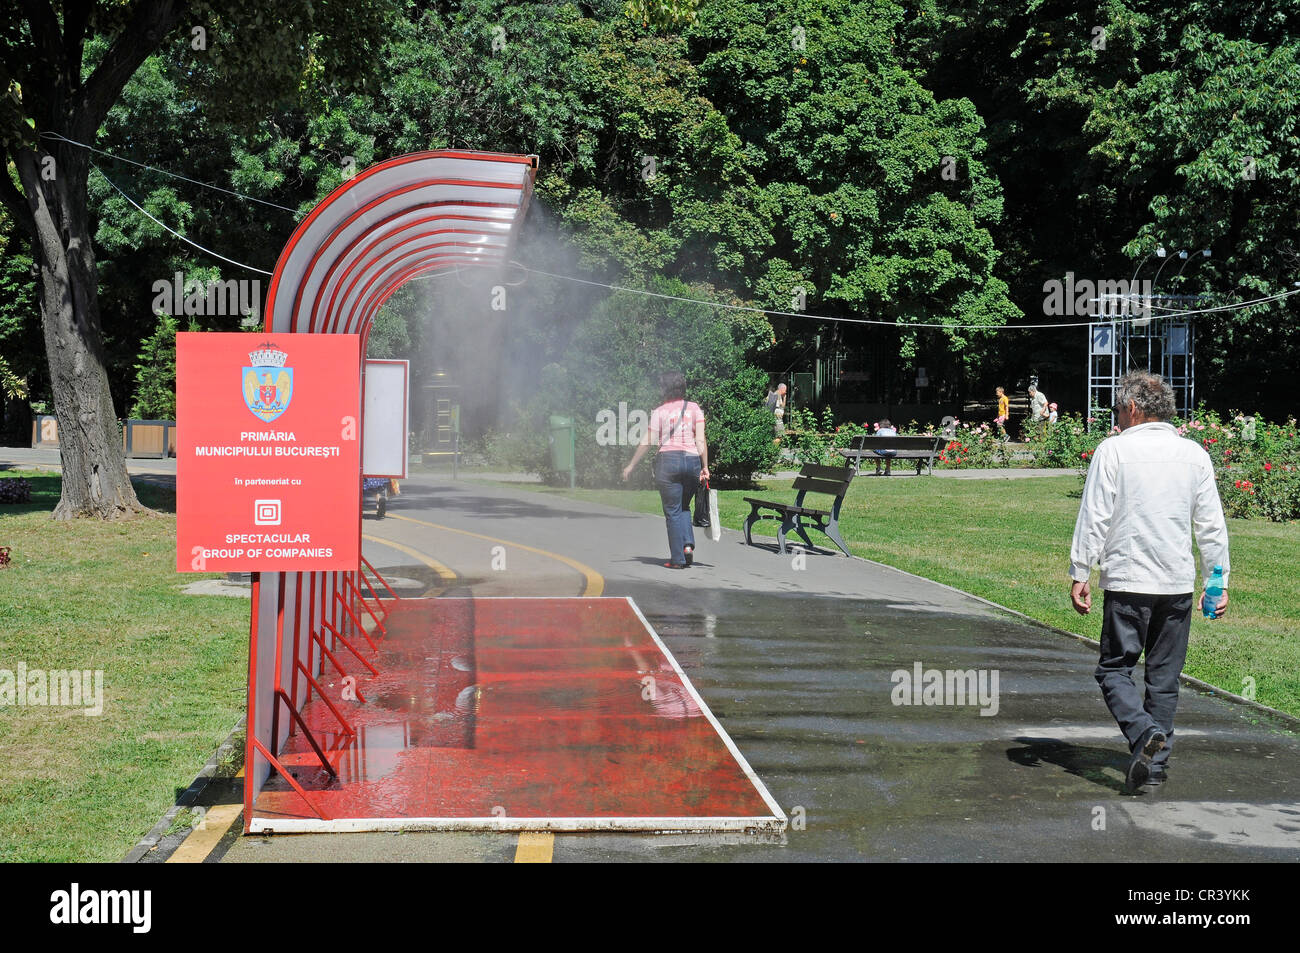 Public water sprinkling system, hot weather, water, cooling, summer, Bucharest, Romania, Eastern Europe, Europe, - Stock Image